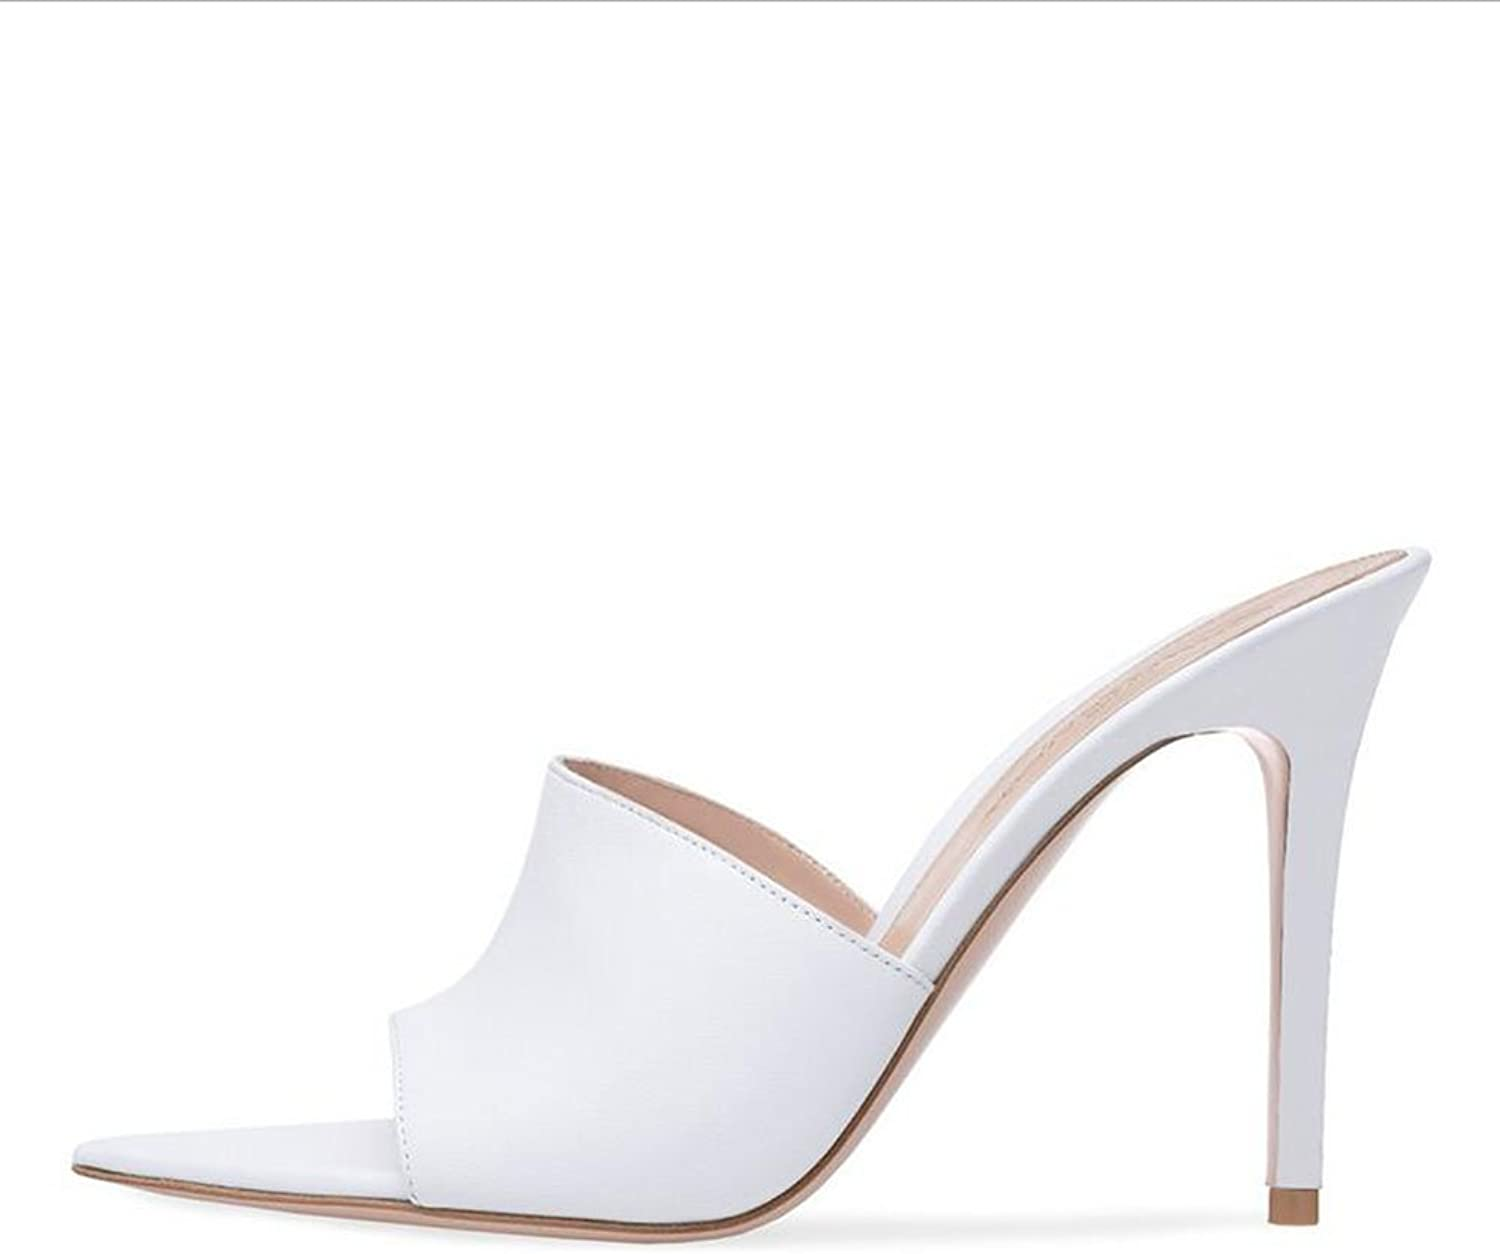 Exing Women's shoes European and American Ladies White Black High-Heeled Sandals Slippers Summer Sandals Walking shoes Stiletto Heel